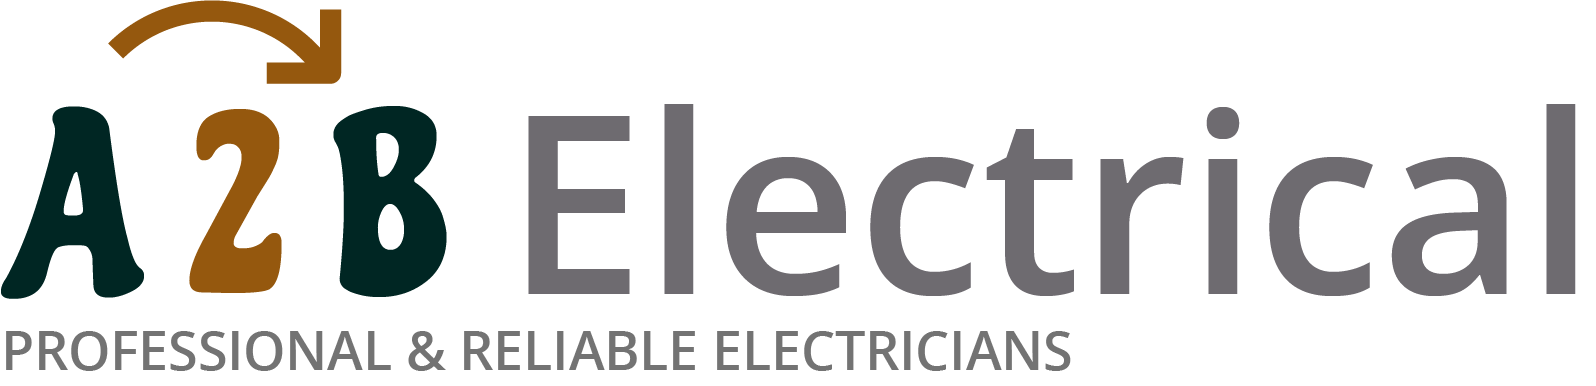 If you have electrical wiring problems in Orsett, we can provide an electrician to have a look for you.